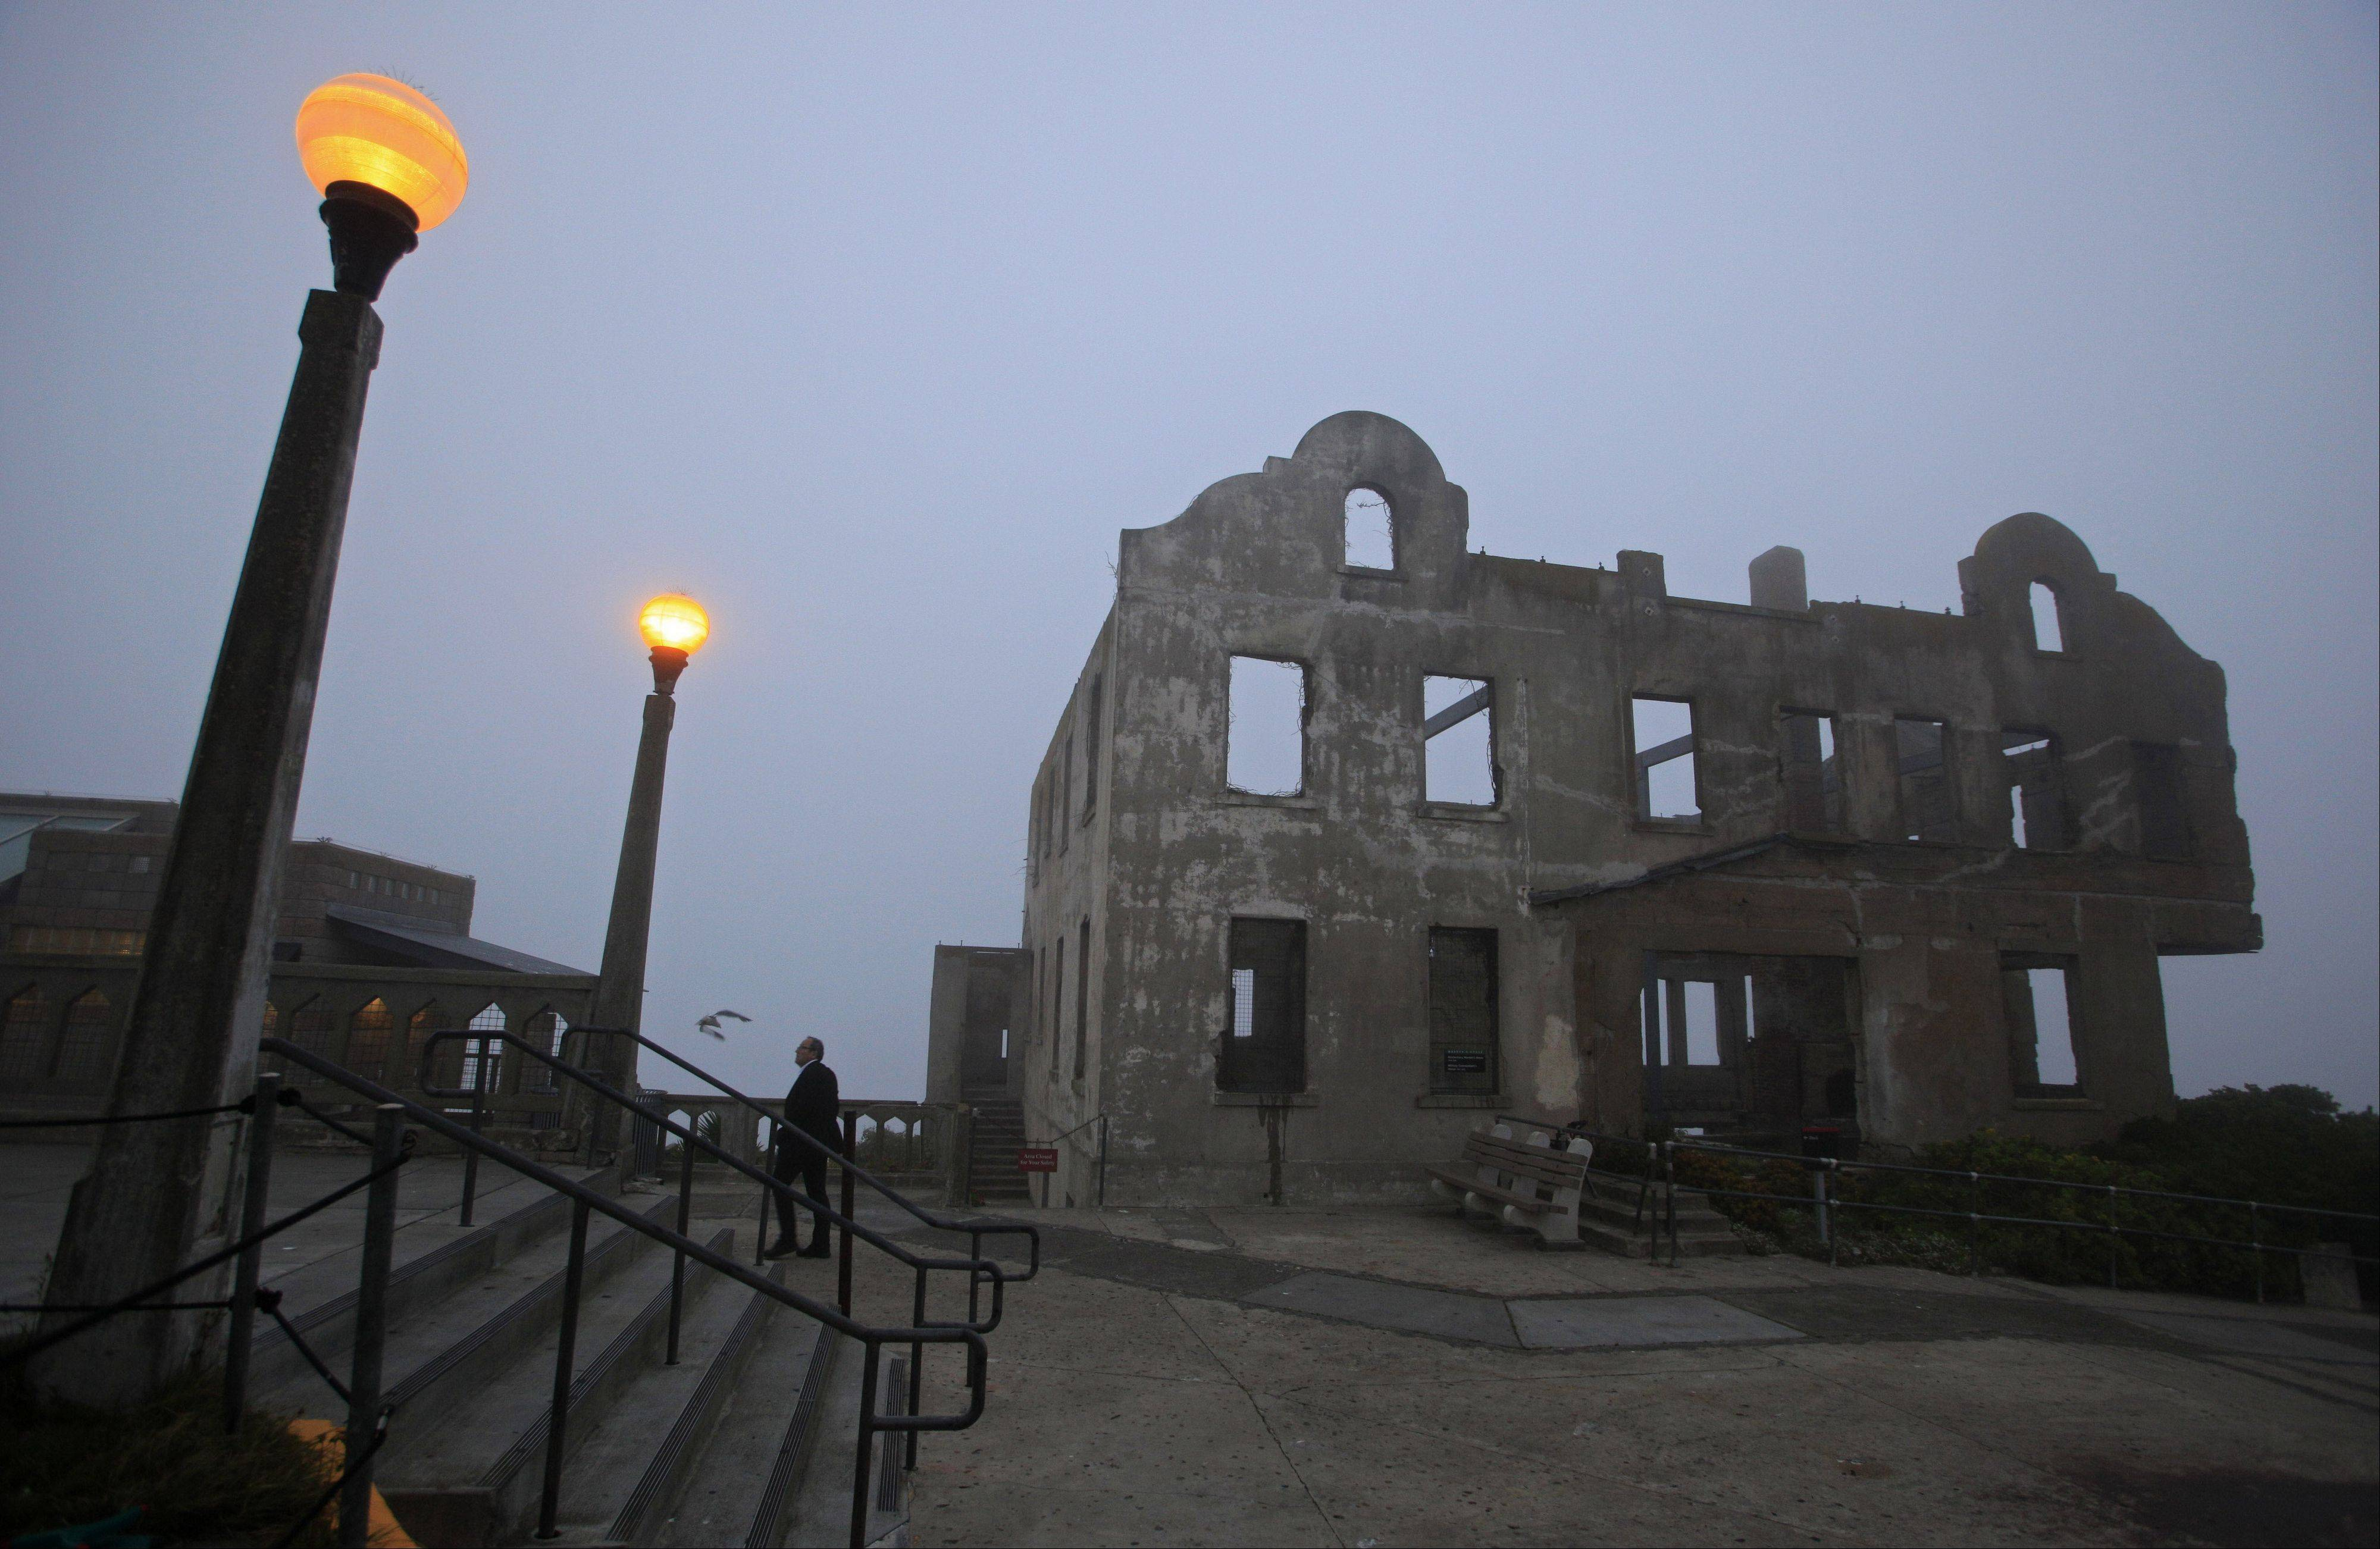 A man walks past the remains of the warden's house during a night tour of Alcatraz.